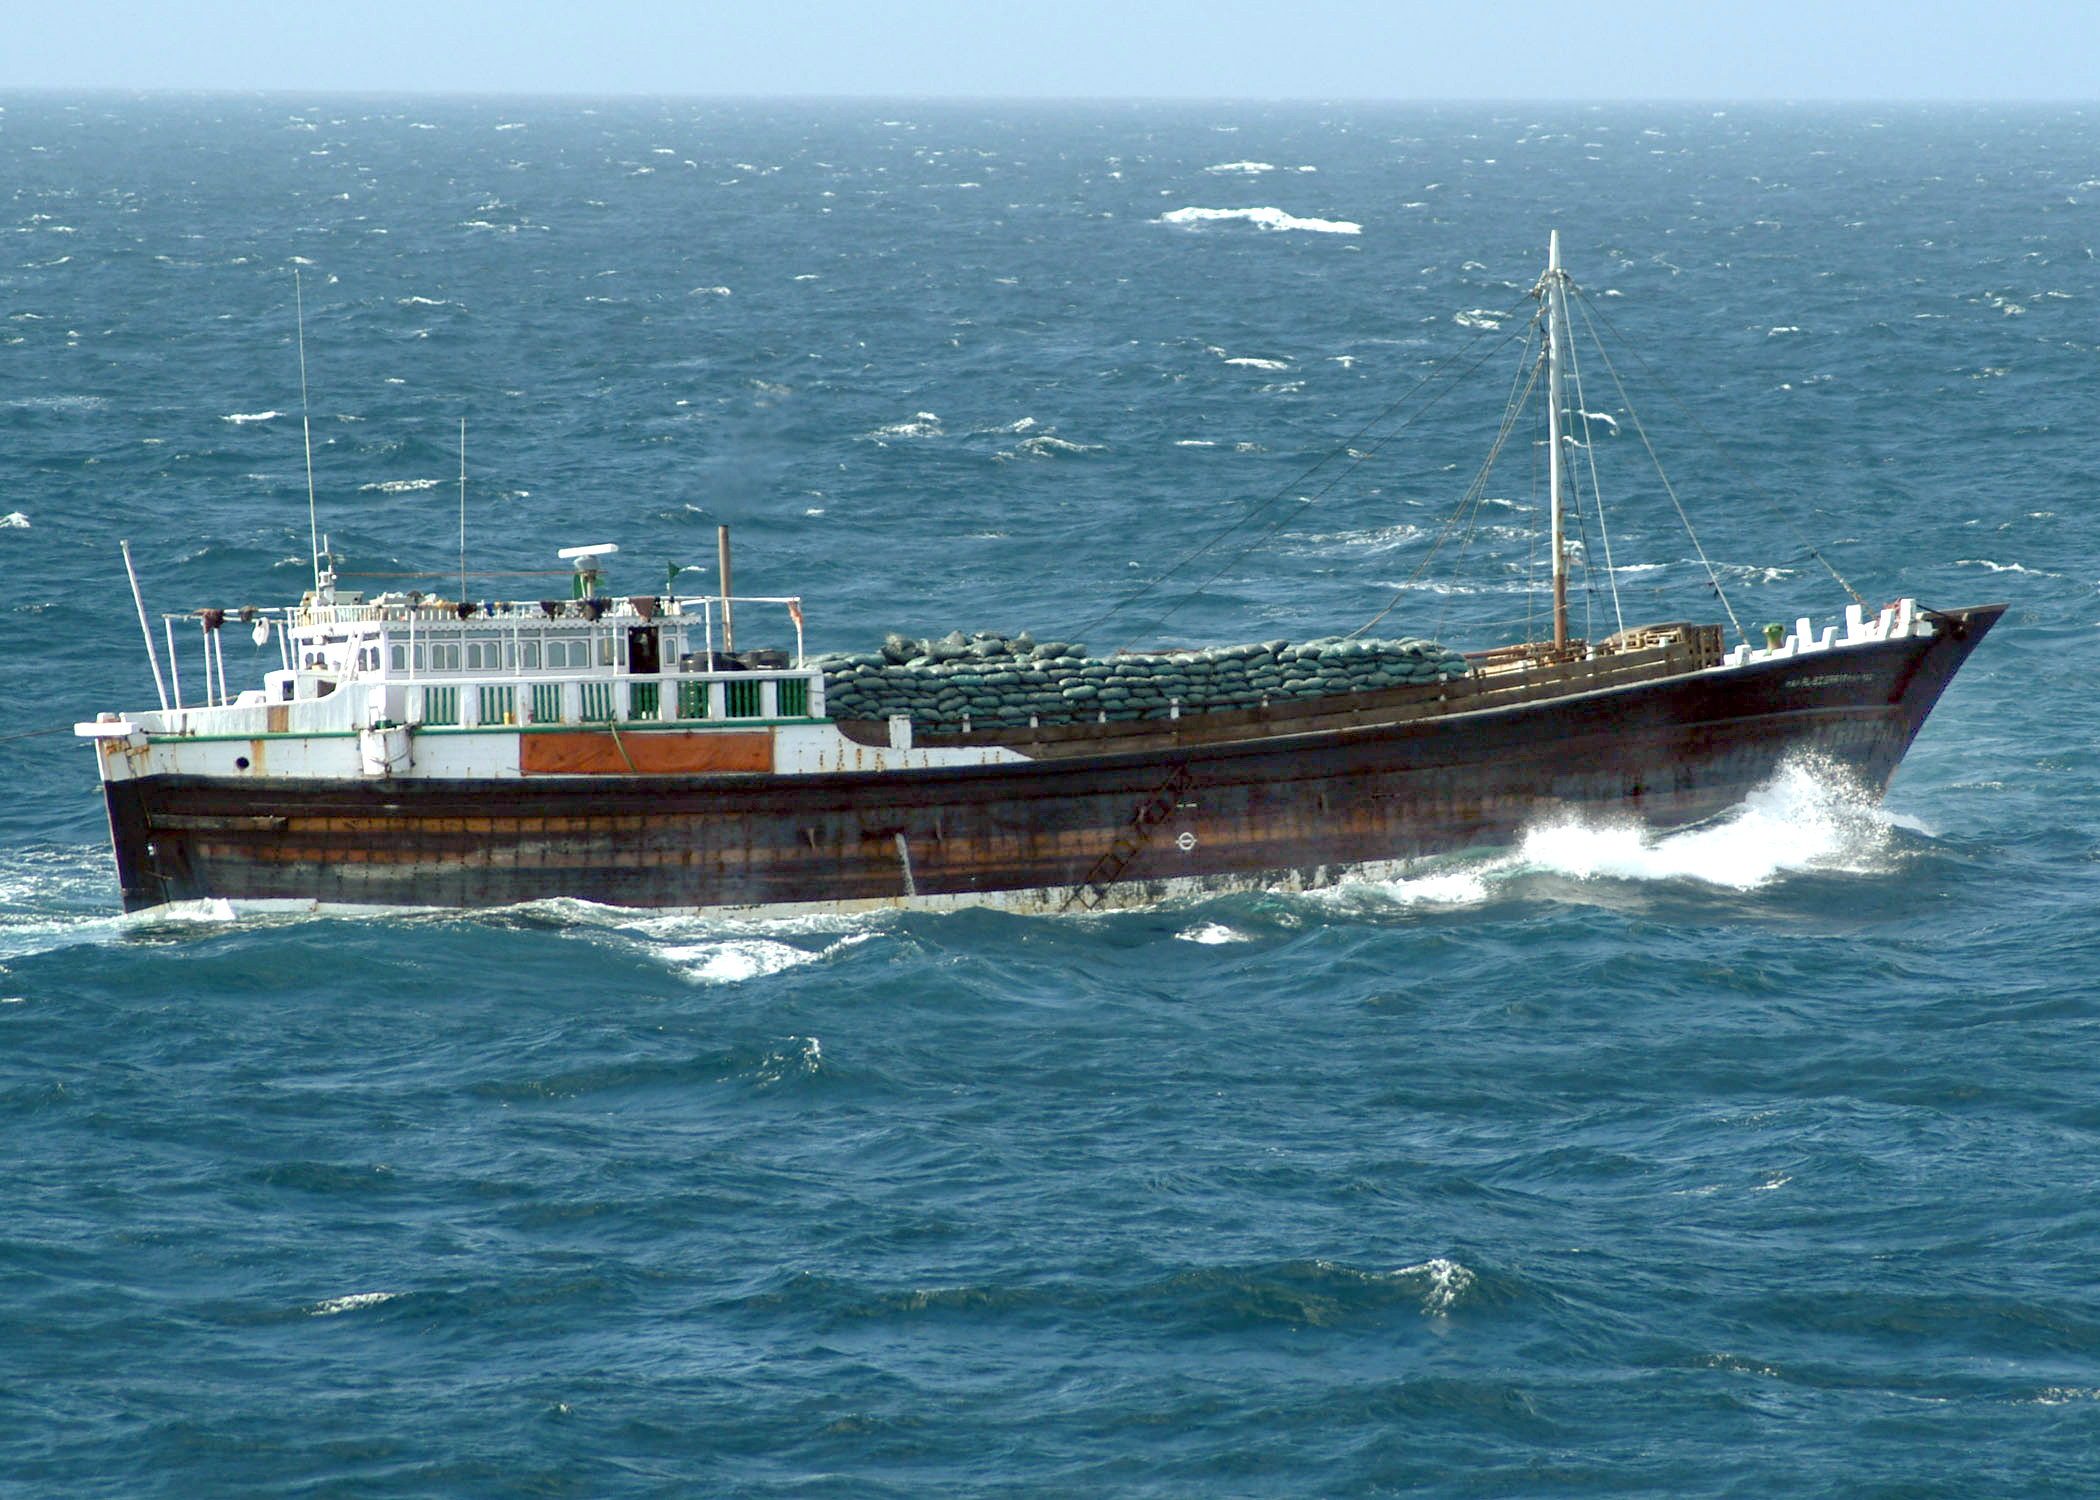 piracy in indian ocean An international agreement that has been instrumental in repressing piracy and armed robbery against ships in the western indian ocean and the gulf.